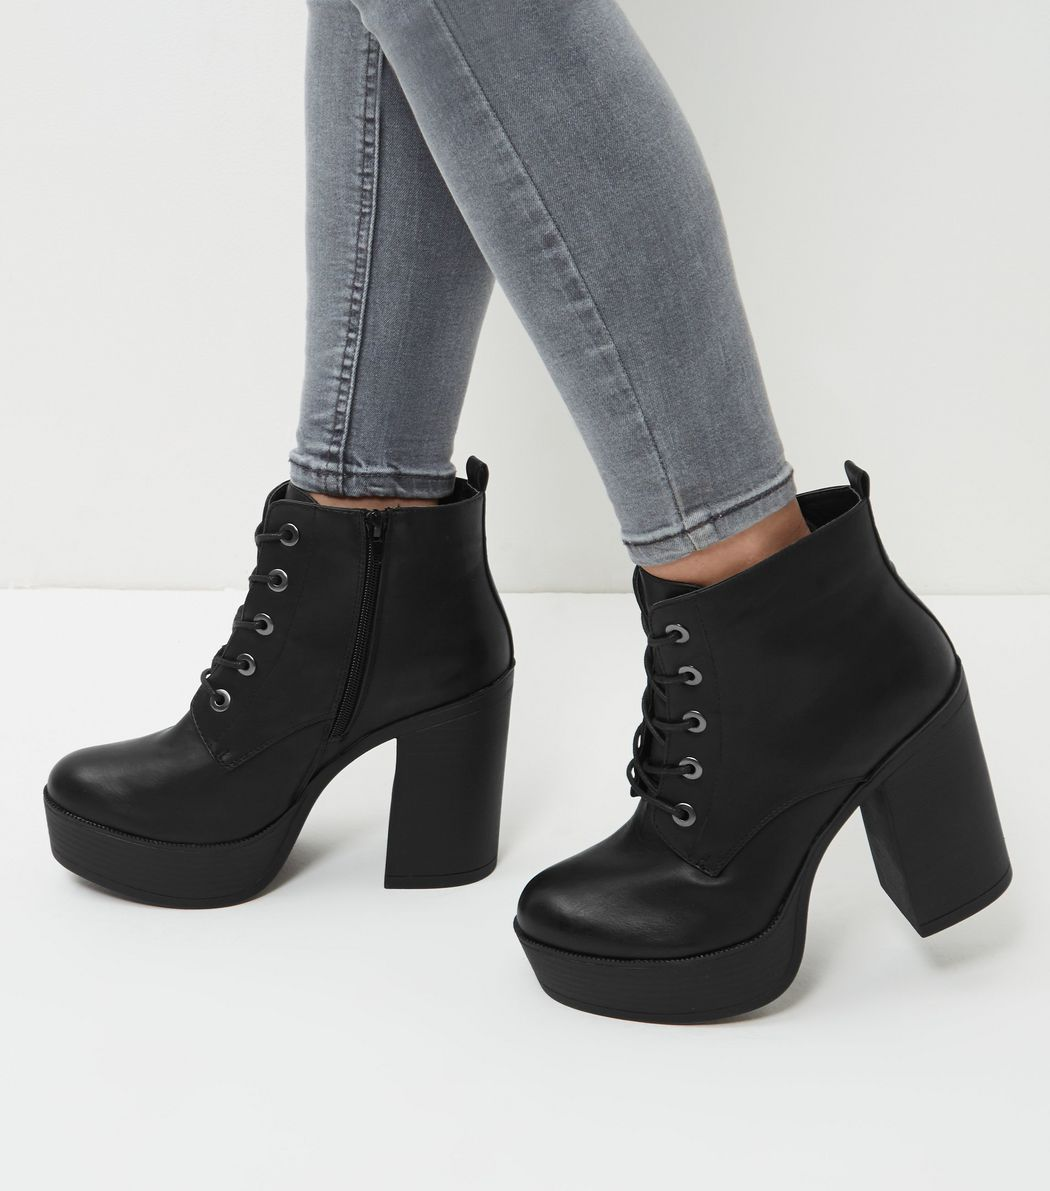 73375d7e6b0 Wide Fit Black Leather-Look Lace Up Block Heel Boots | Boots | Block ...